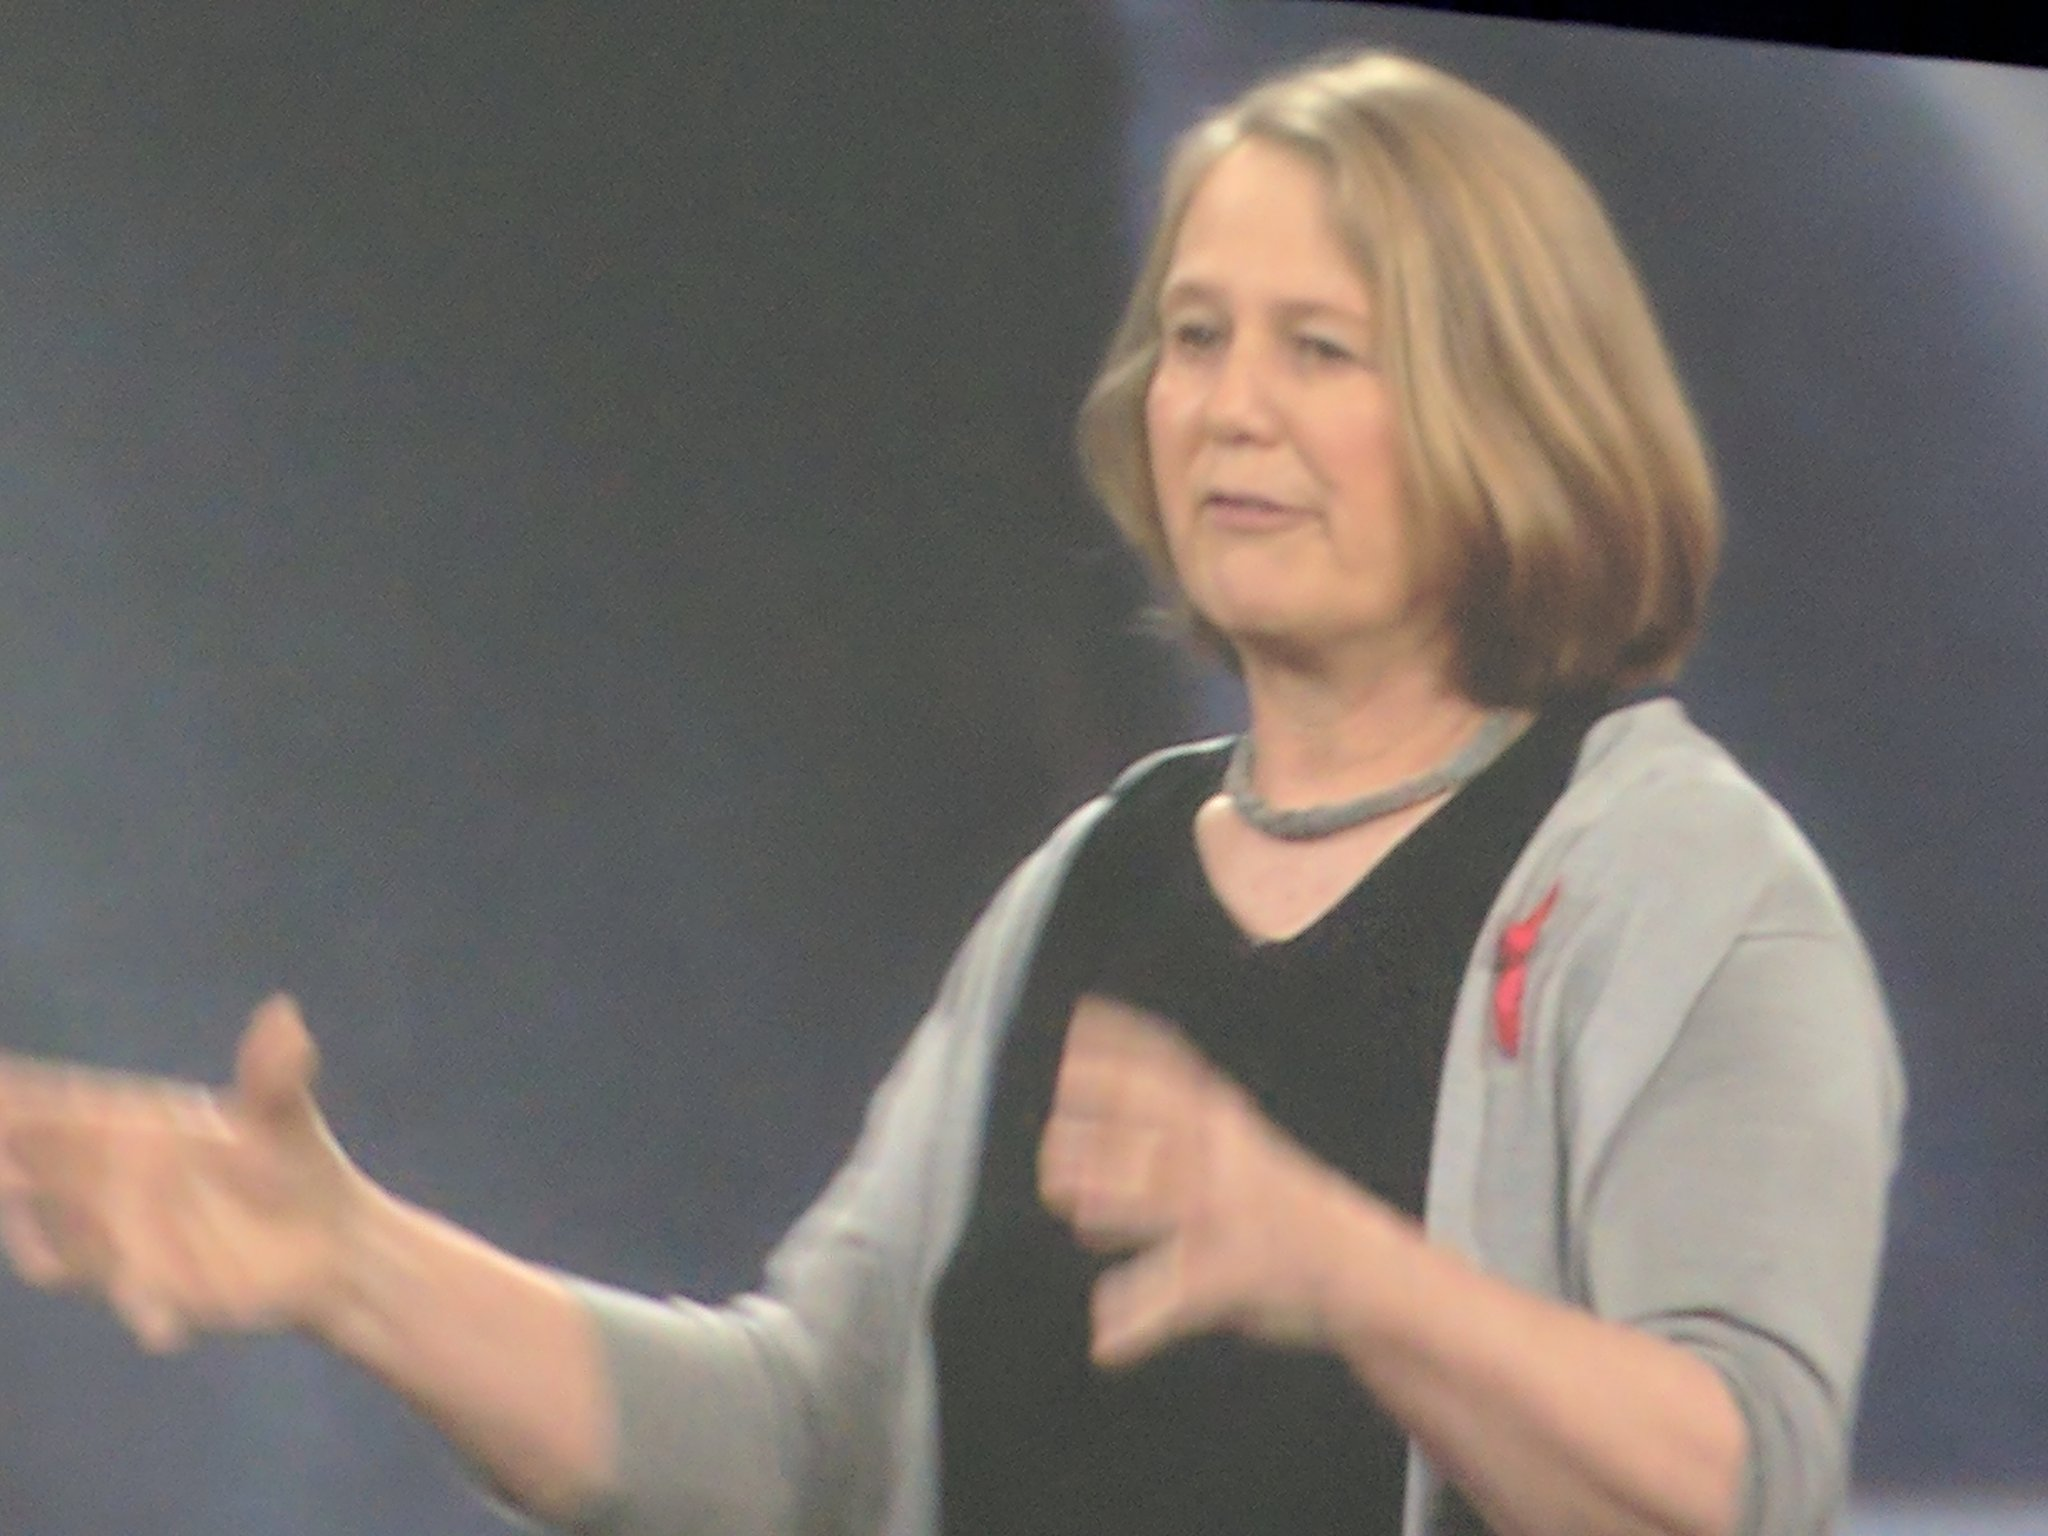 Greene acknowledges #internationalwomensday with red ribbon and statement #GoogleNext17 https://t.co/Z57aa2P7ve